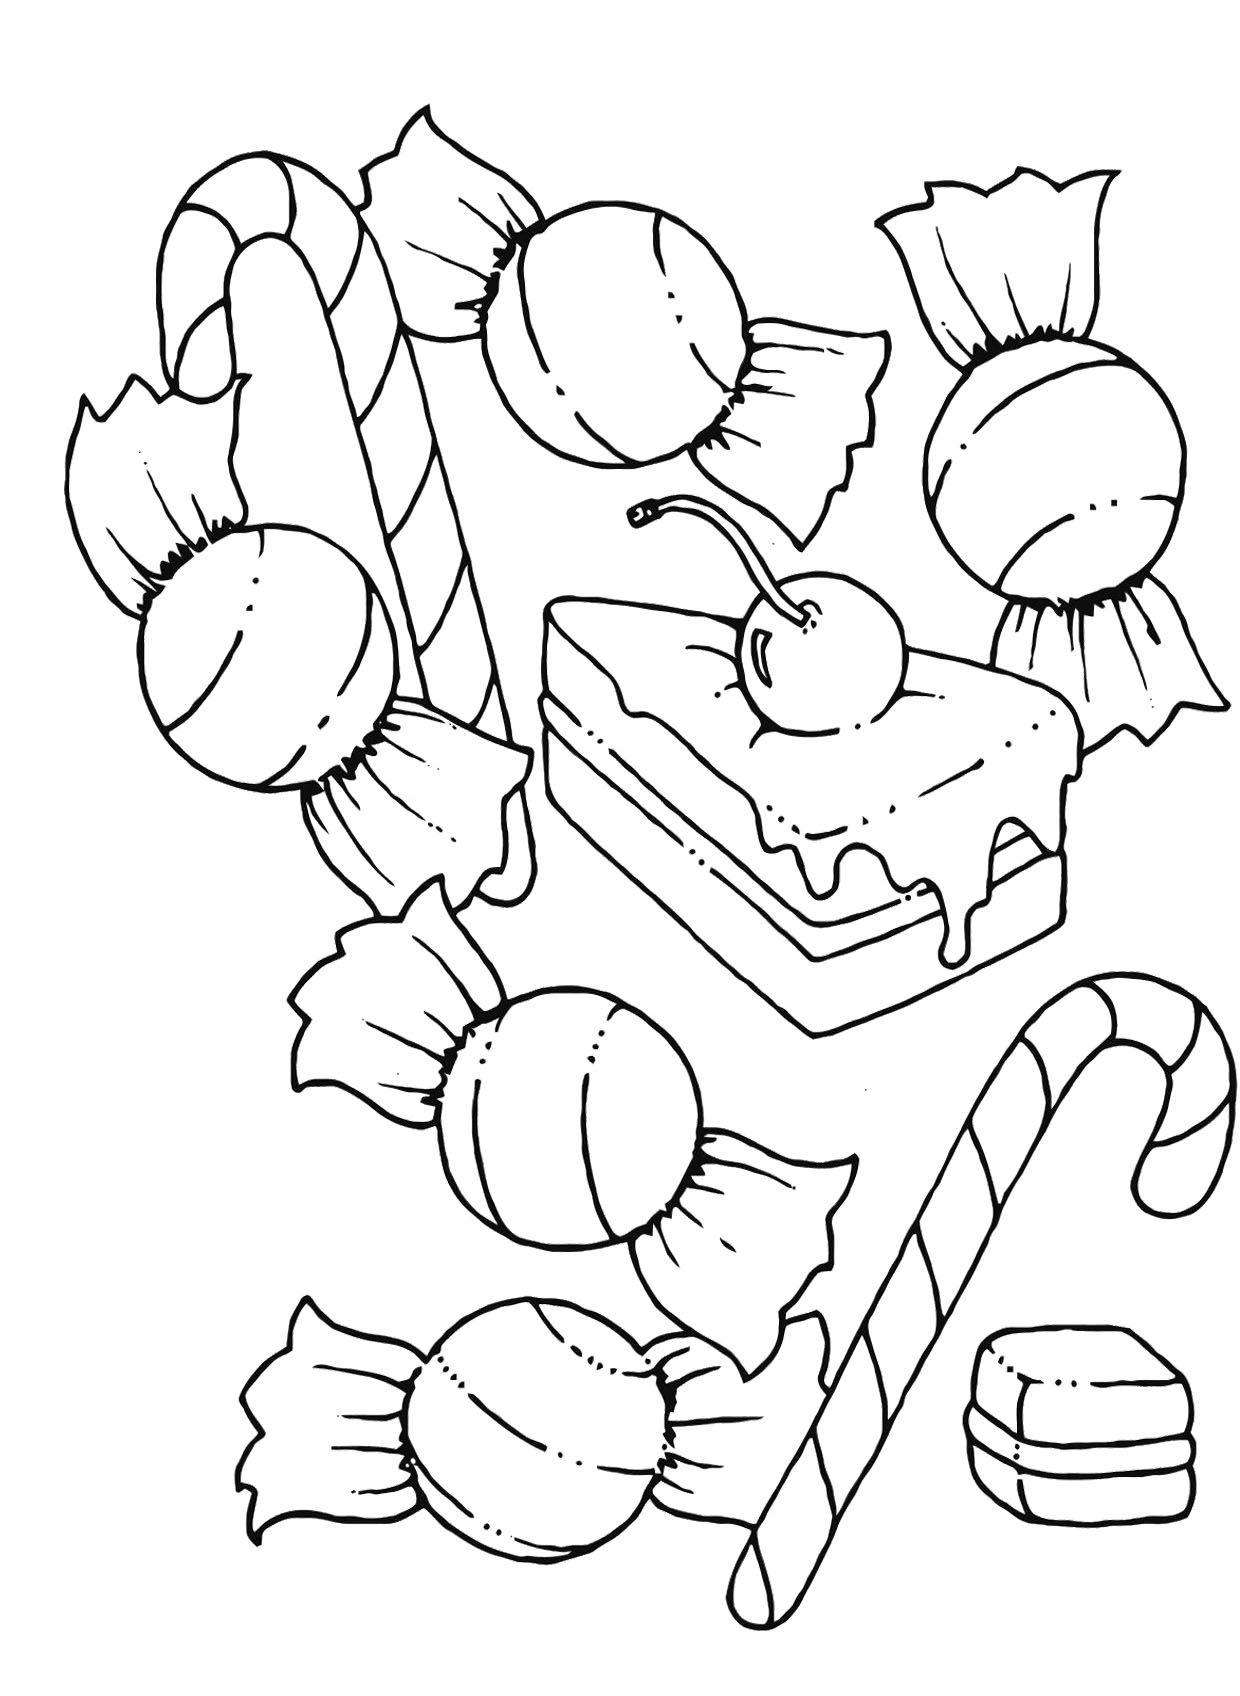 A Collection Of Delicious Candy Coloring Pages | Preschool | Coloriage